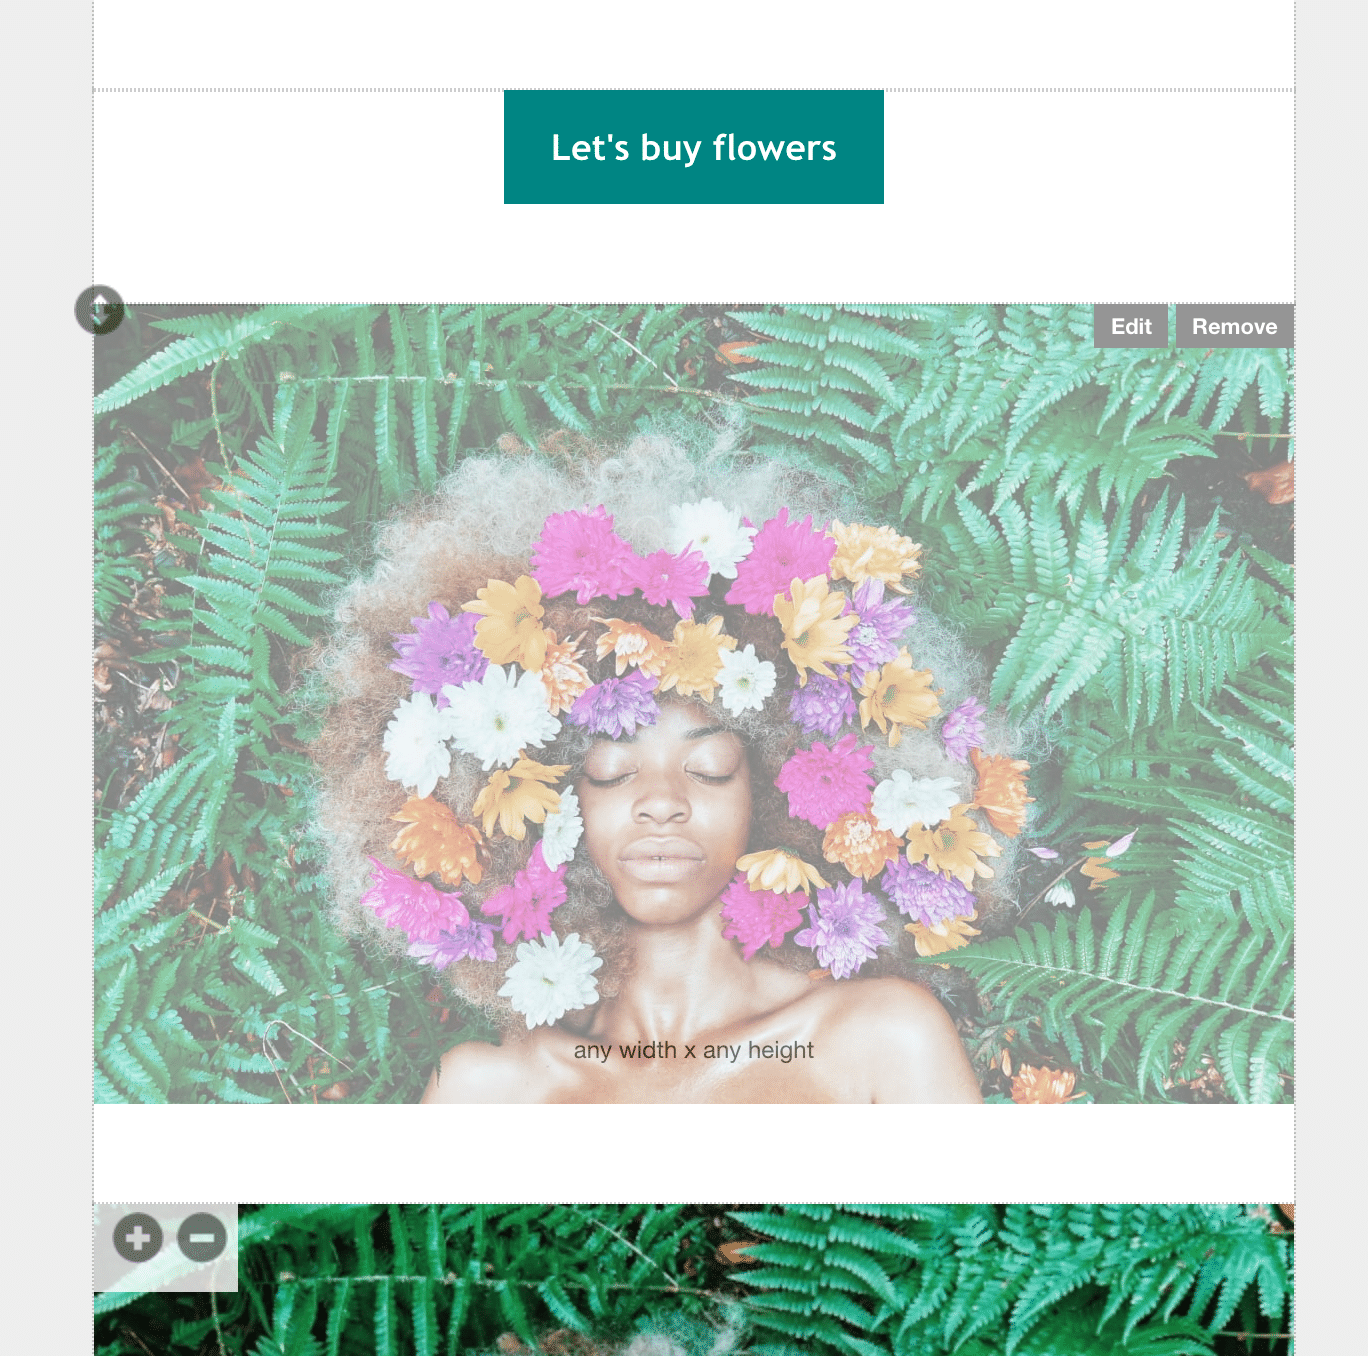 Rearranging blocks in your Mailchimp template